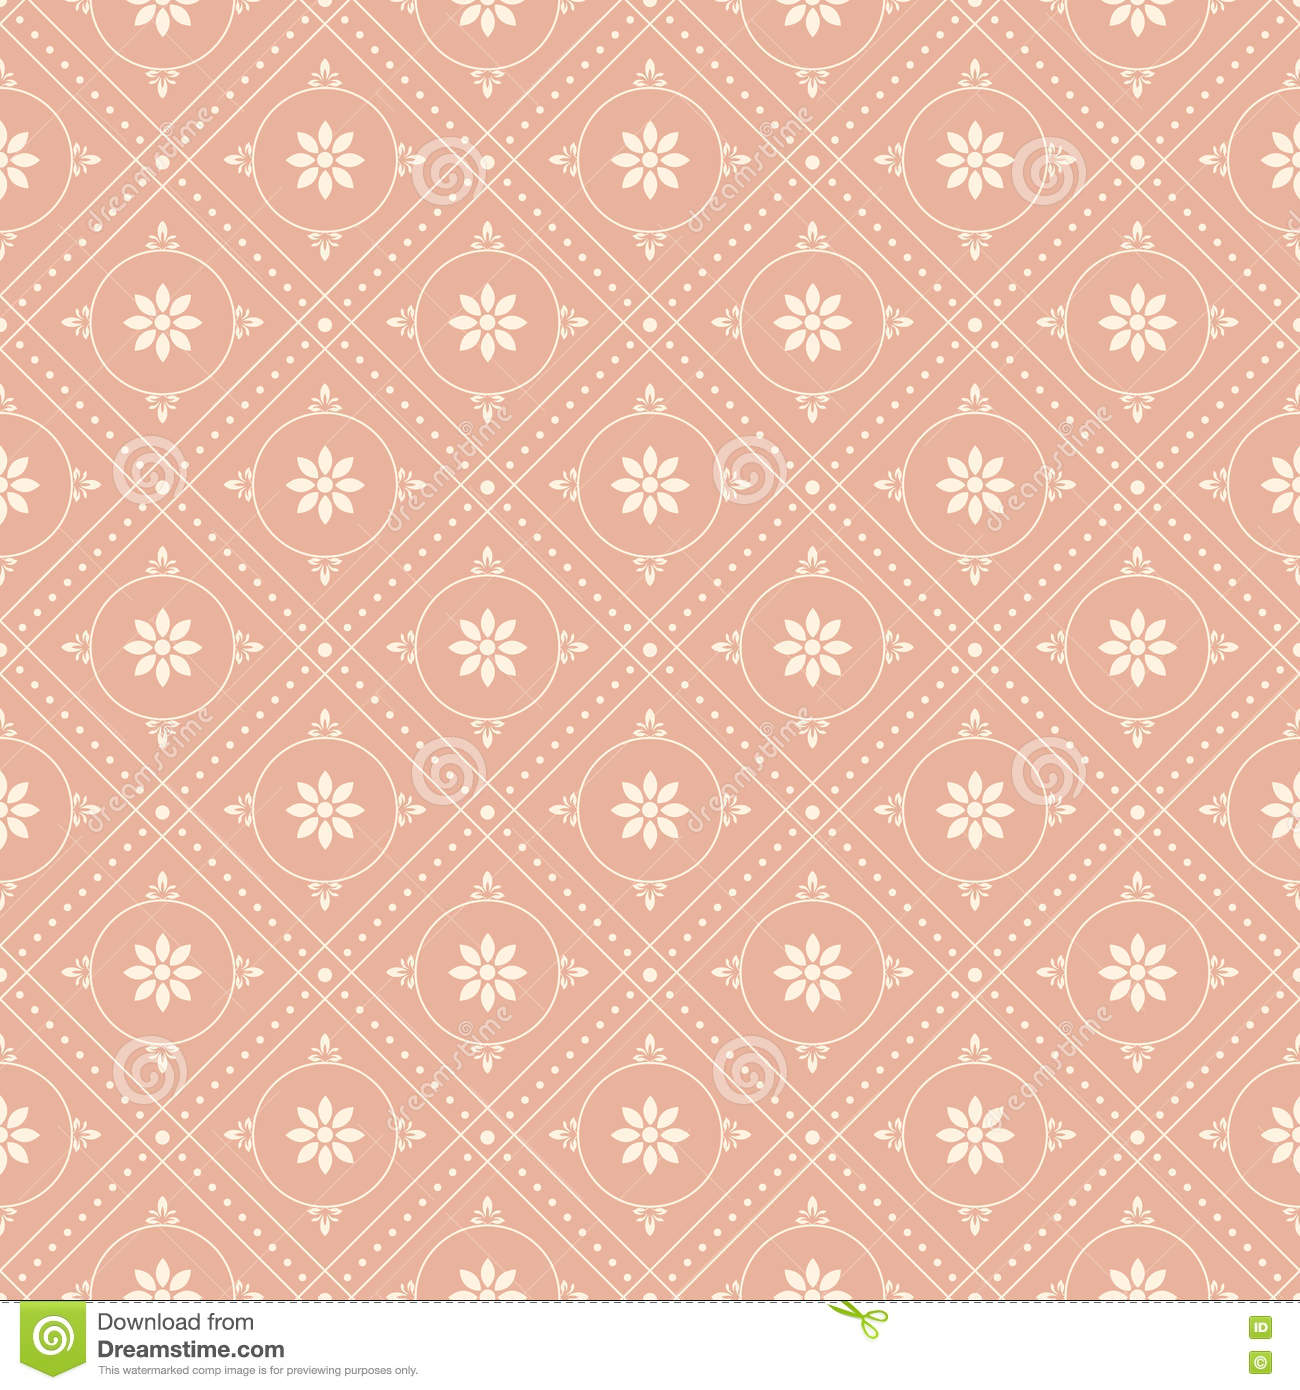 Antique Seamless Background Image Of Vintage Pink Round